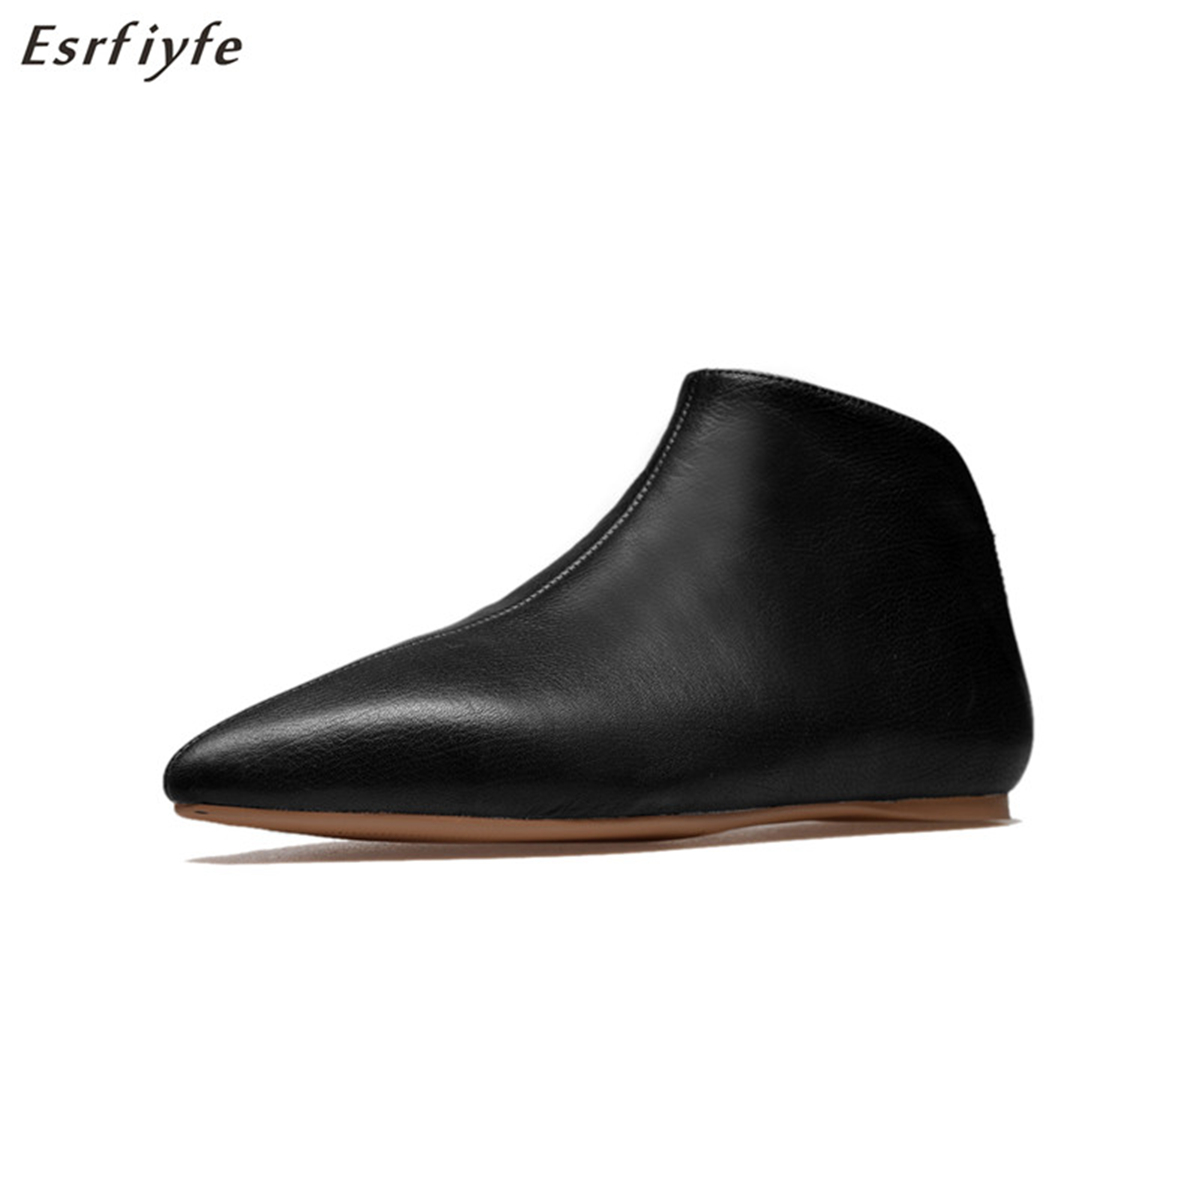 ESRFIYFE New Arrival Spring Autumn Genuine Leather High Heels Flat with Slip-on Fashion Shoes for Woman Ankle Boots LadiesESRFIYFE New Arrival Spring Autumn Genuine Leather High Heels Flat with Slip-on Fashion Shoes for Woman Ankle Boots Ladies